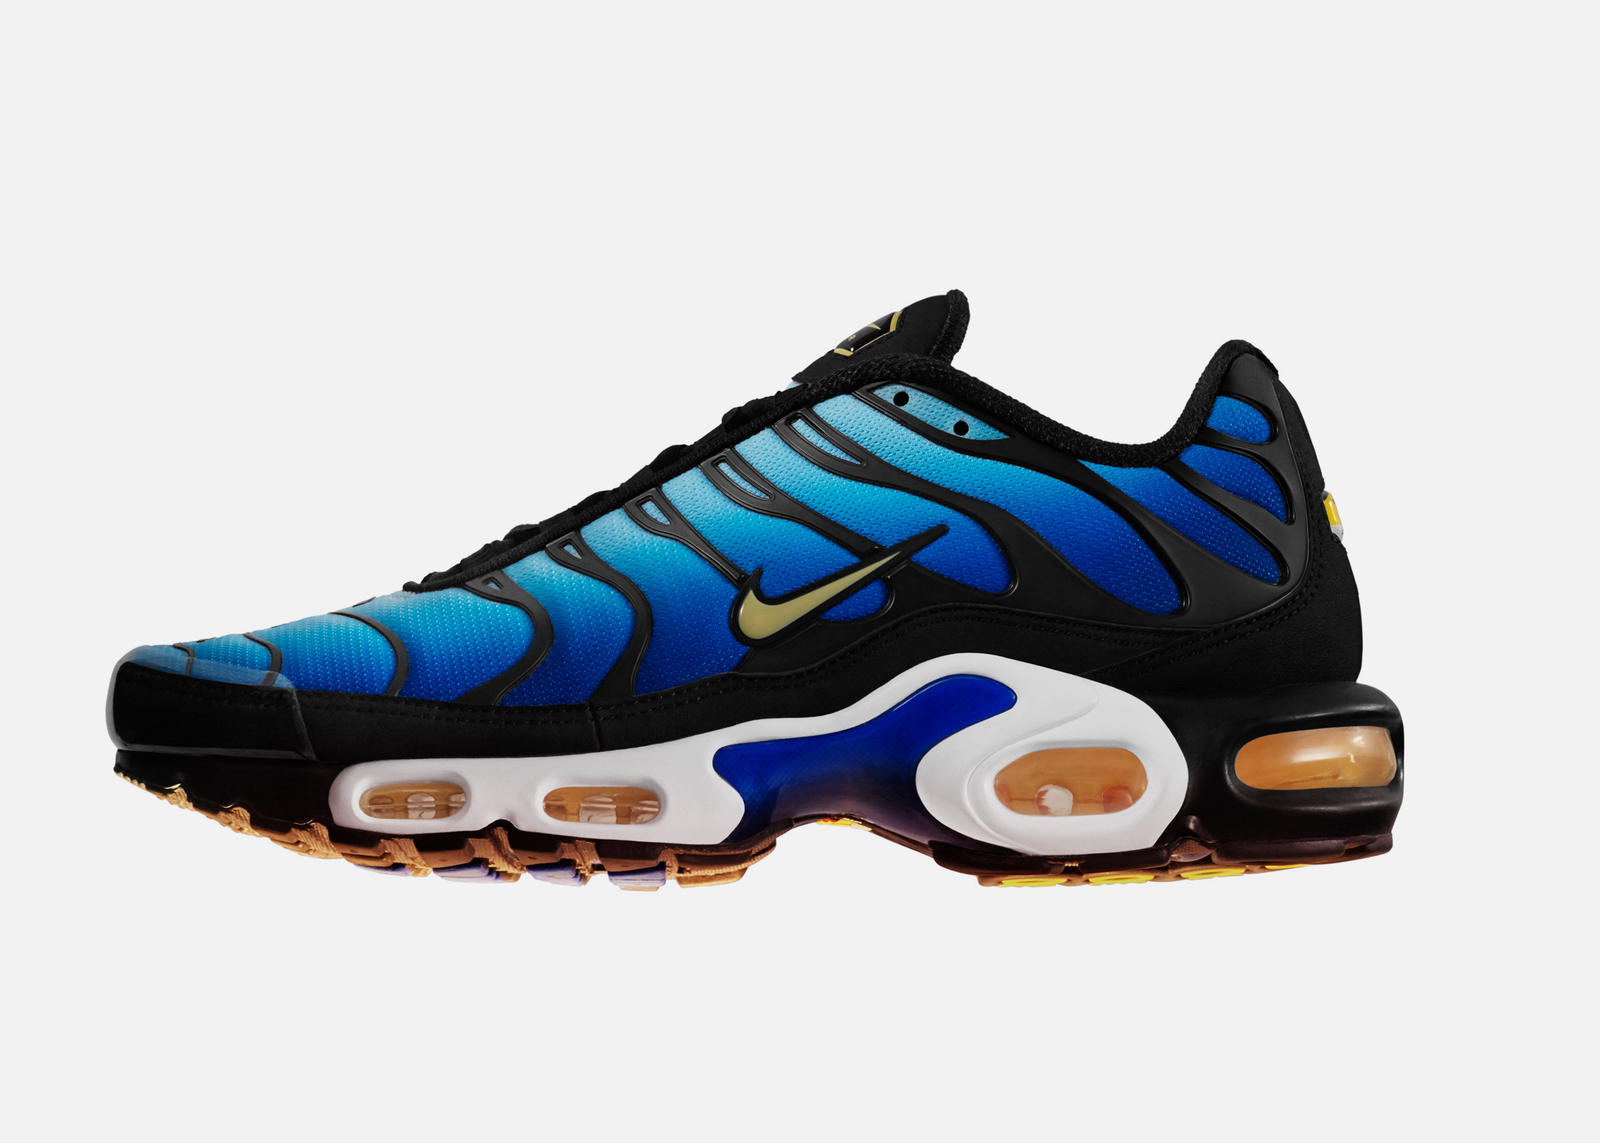 online retailer 0644e c7142 The Untold Story of the Nike Air Max Plus 20